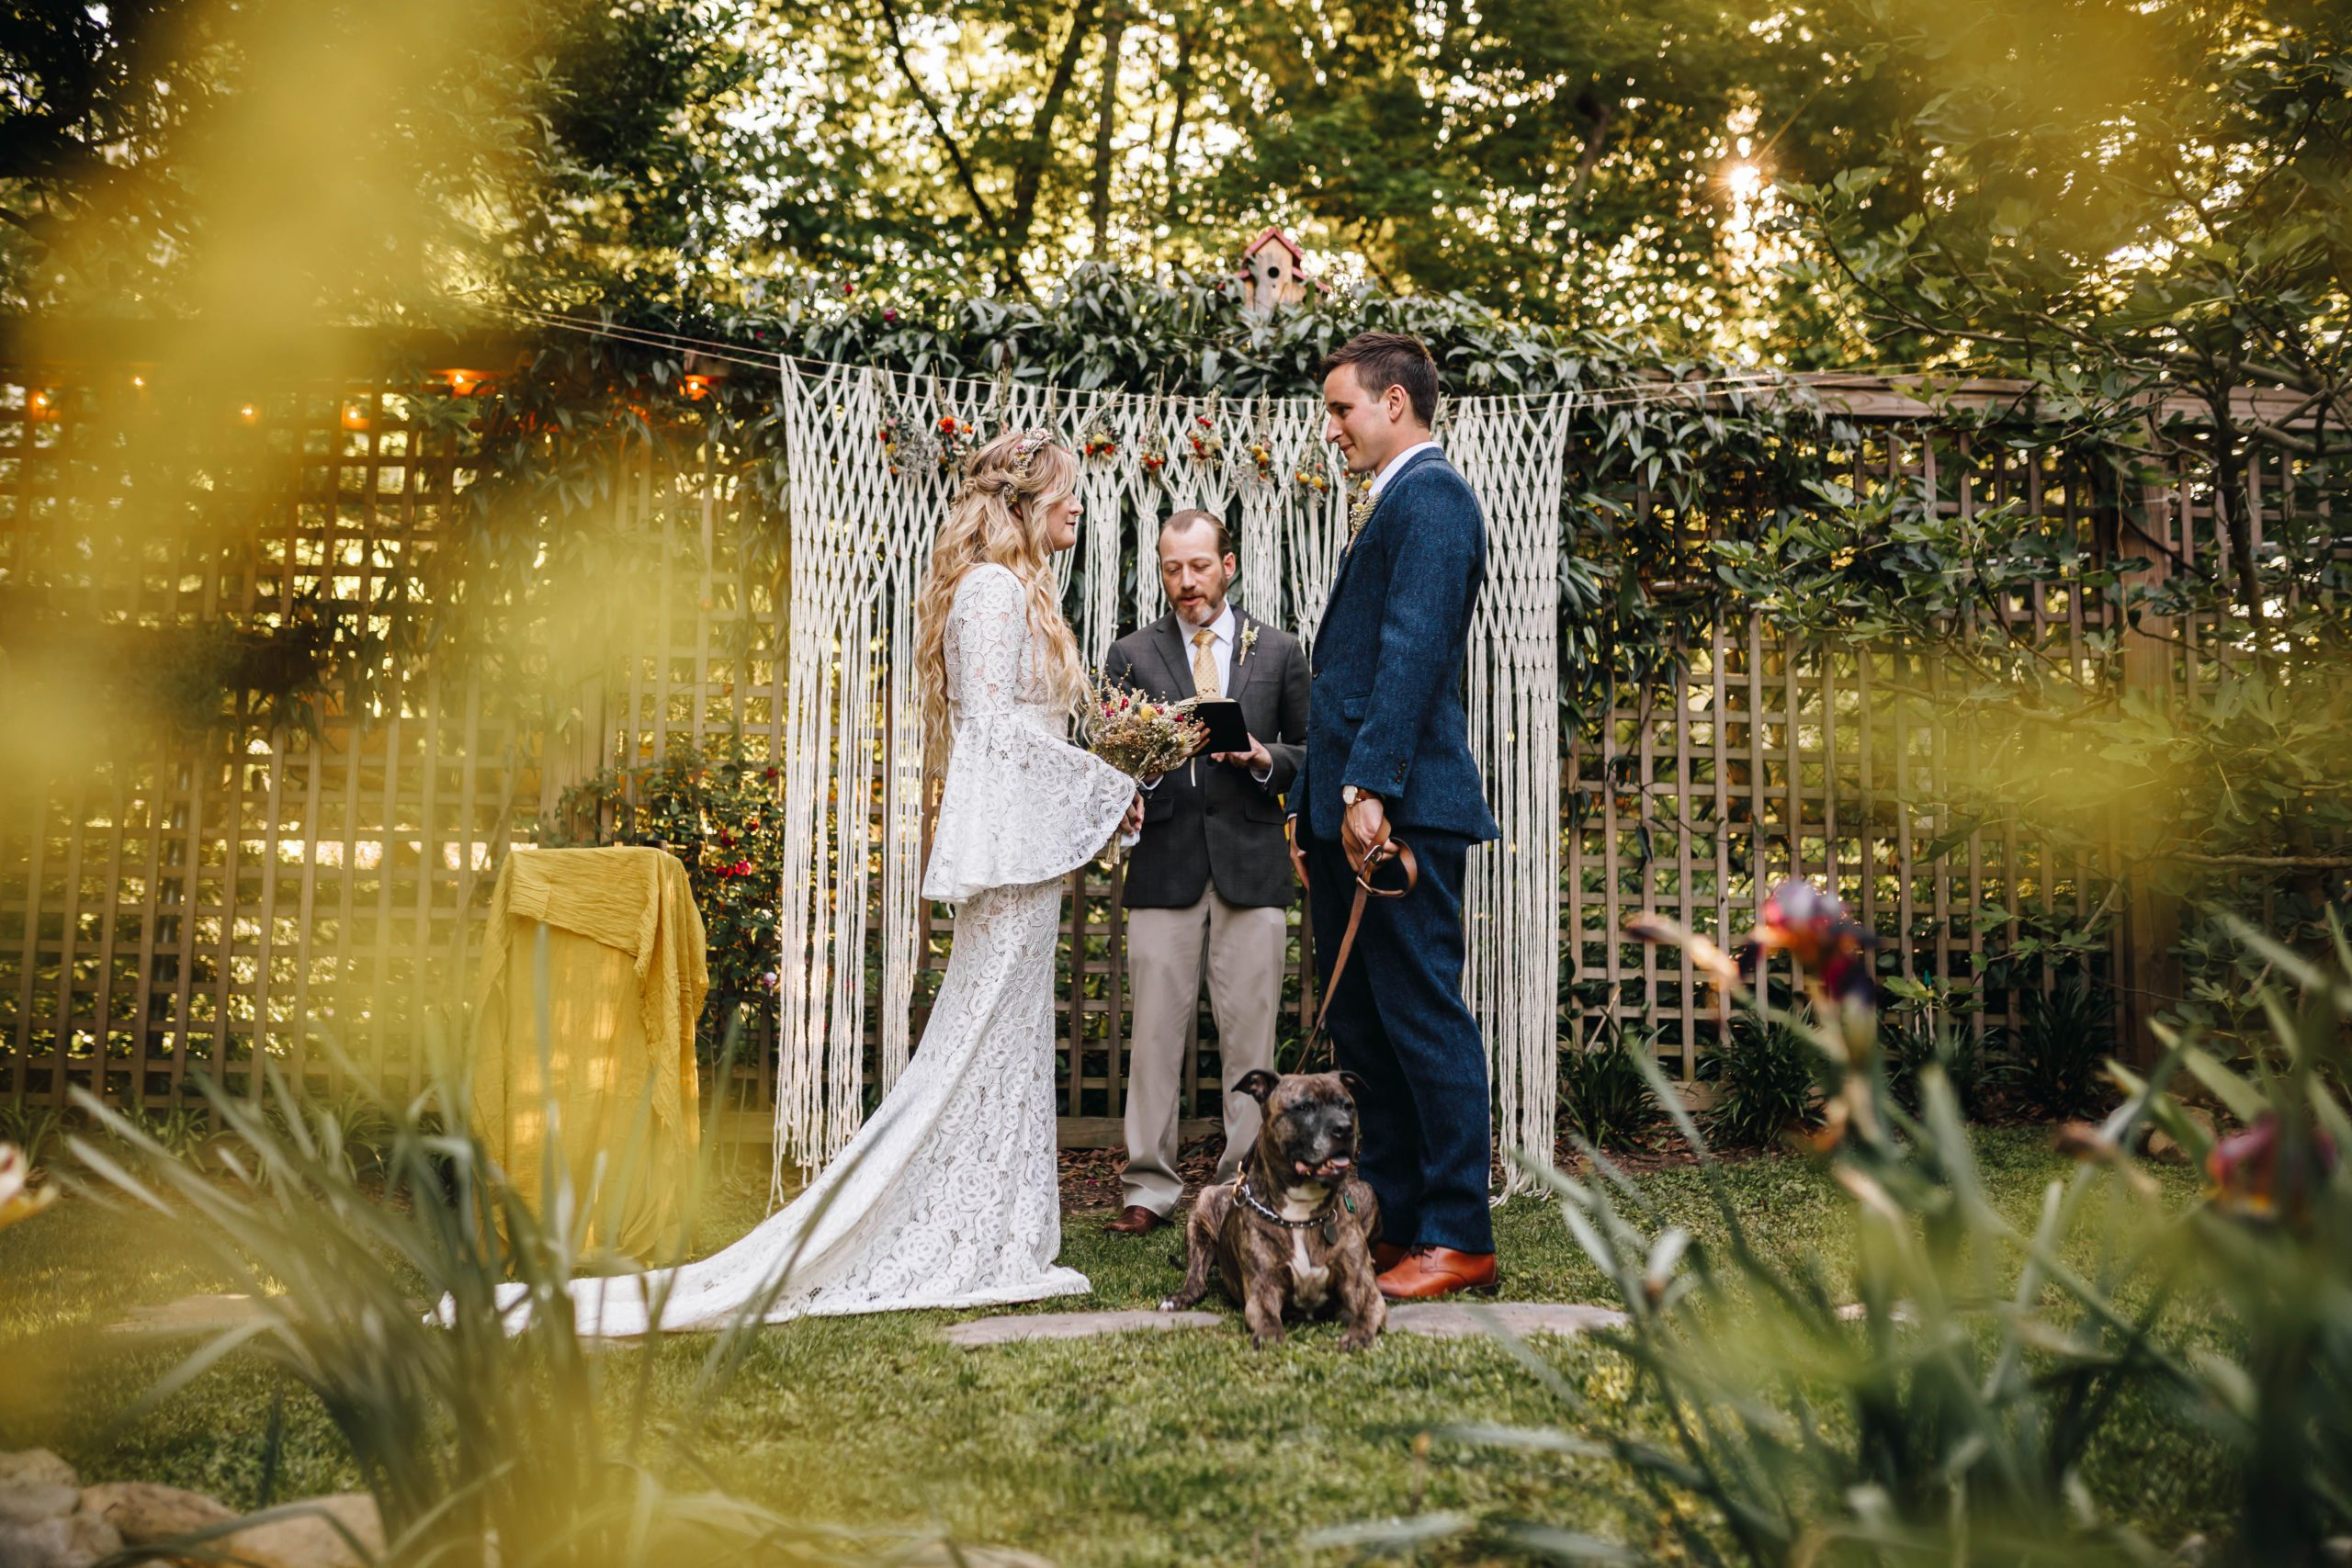 A Backyard Wedding Story